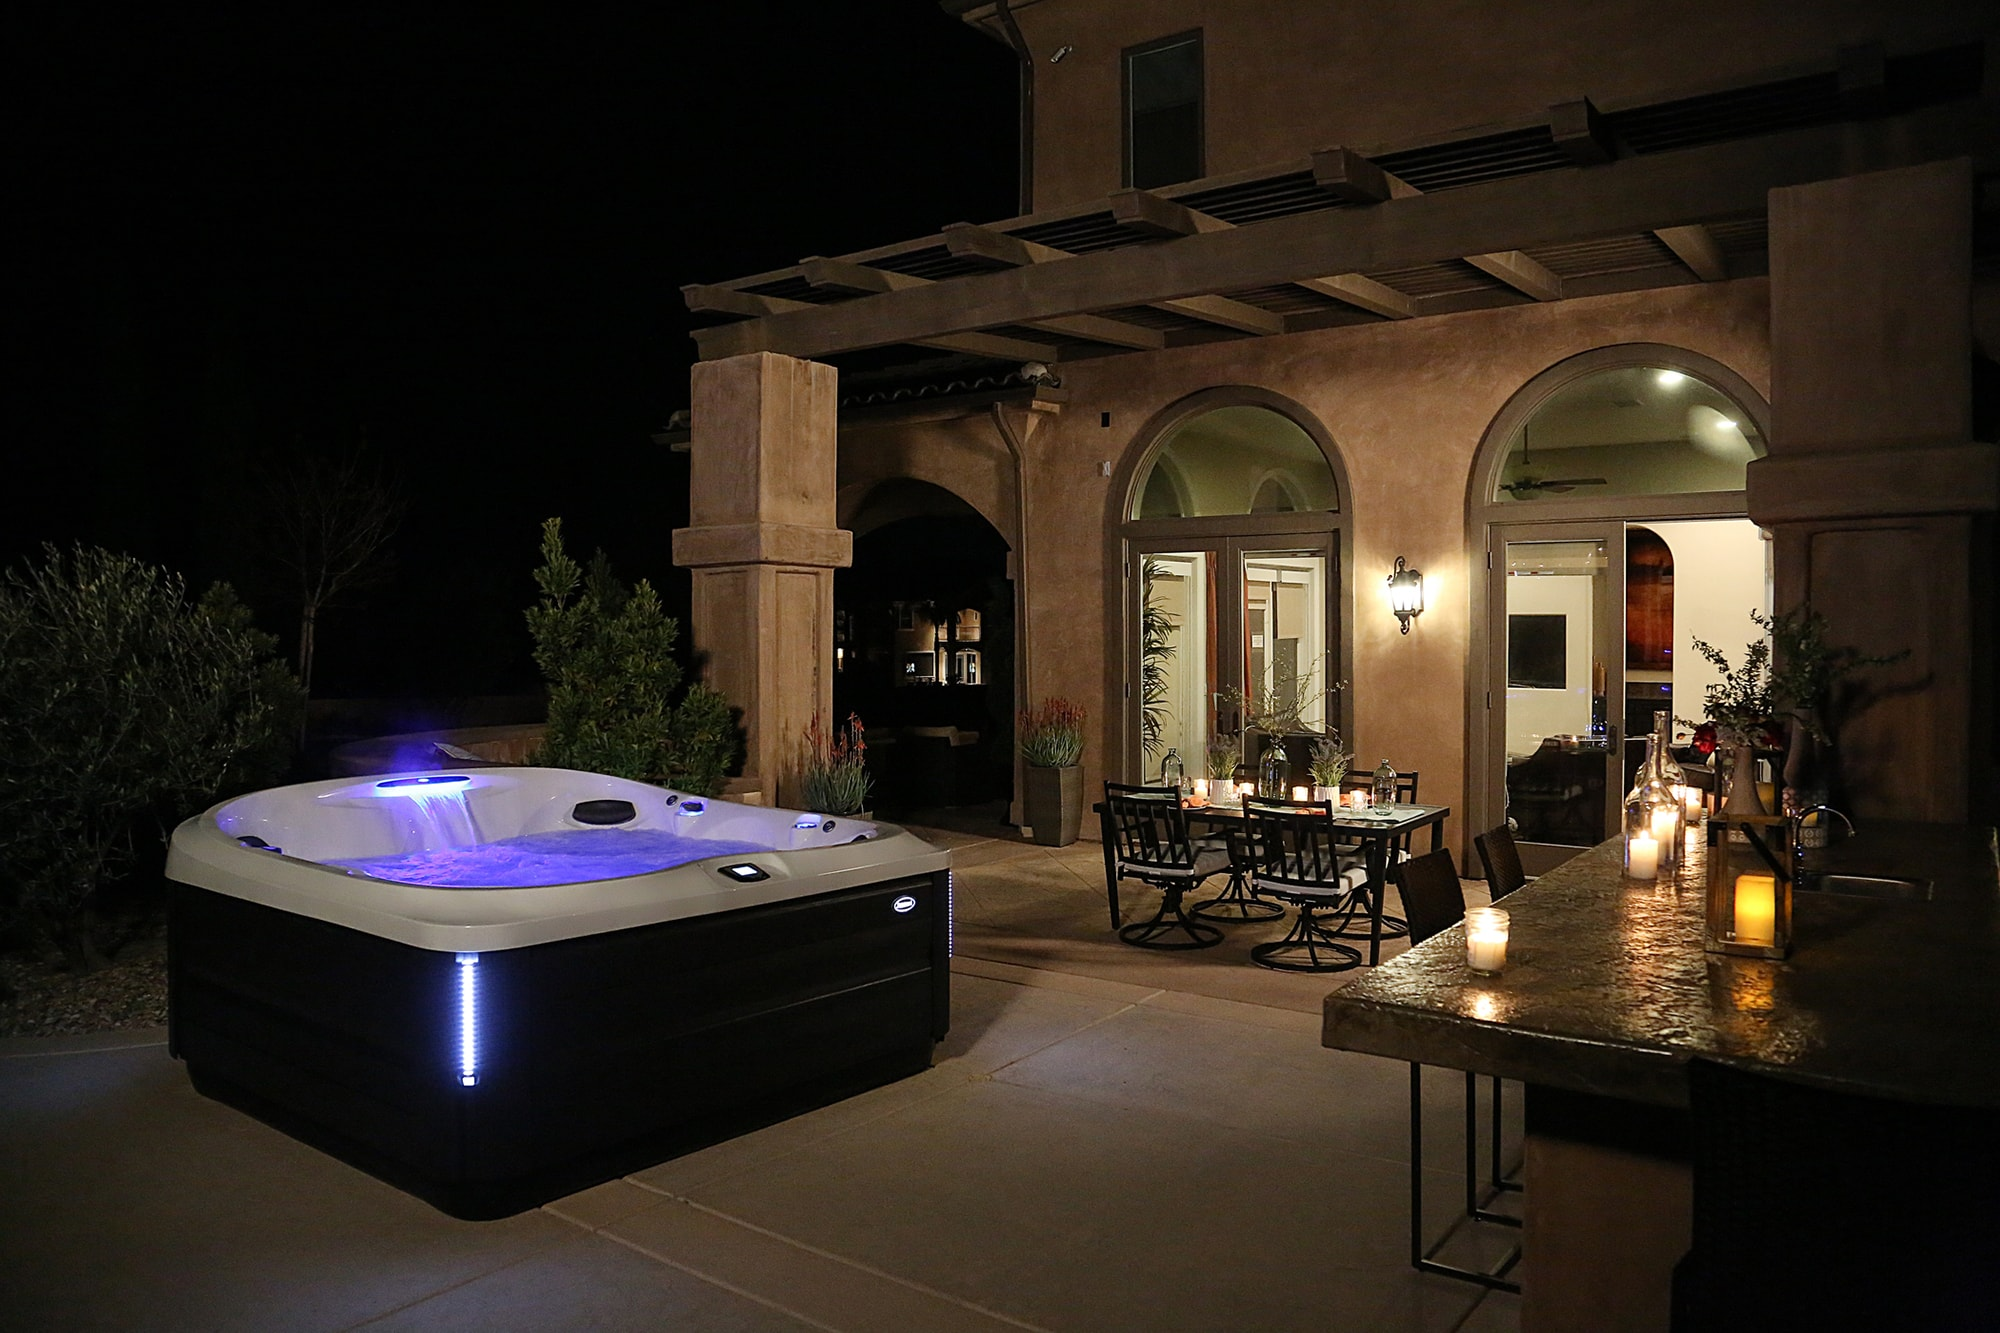 Jacuzzi J-400 Collection Hot Tub Installation at Night